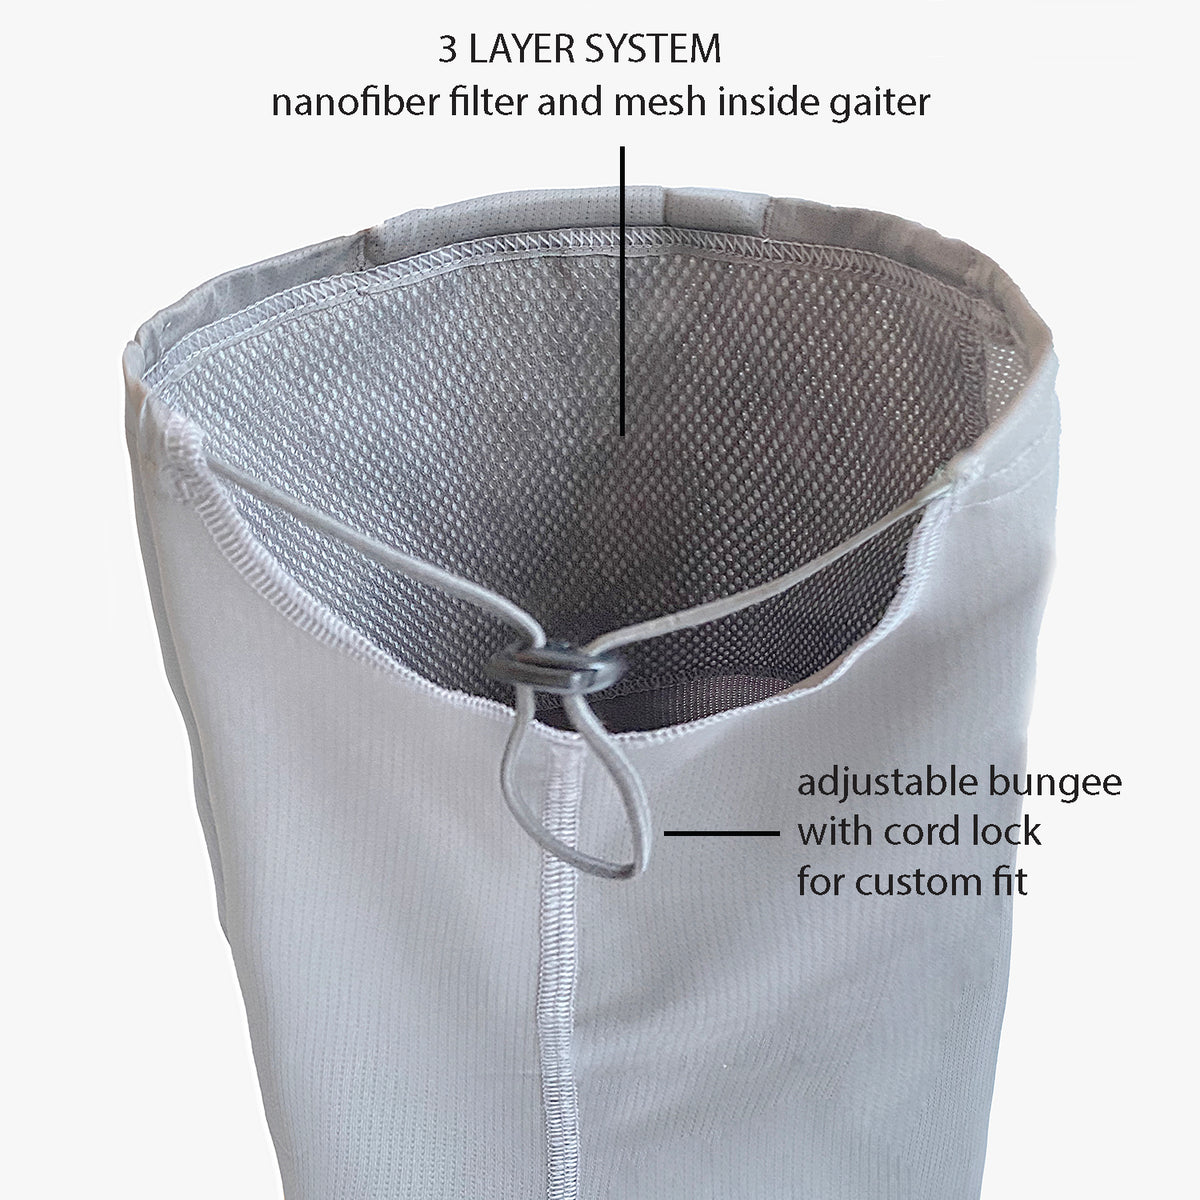 Puretec cool® Antimicrobial Neck Gaiter with Nanofiber Filter (Gray Flannel/American Flag)